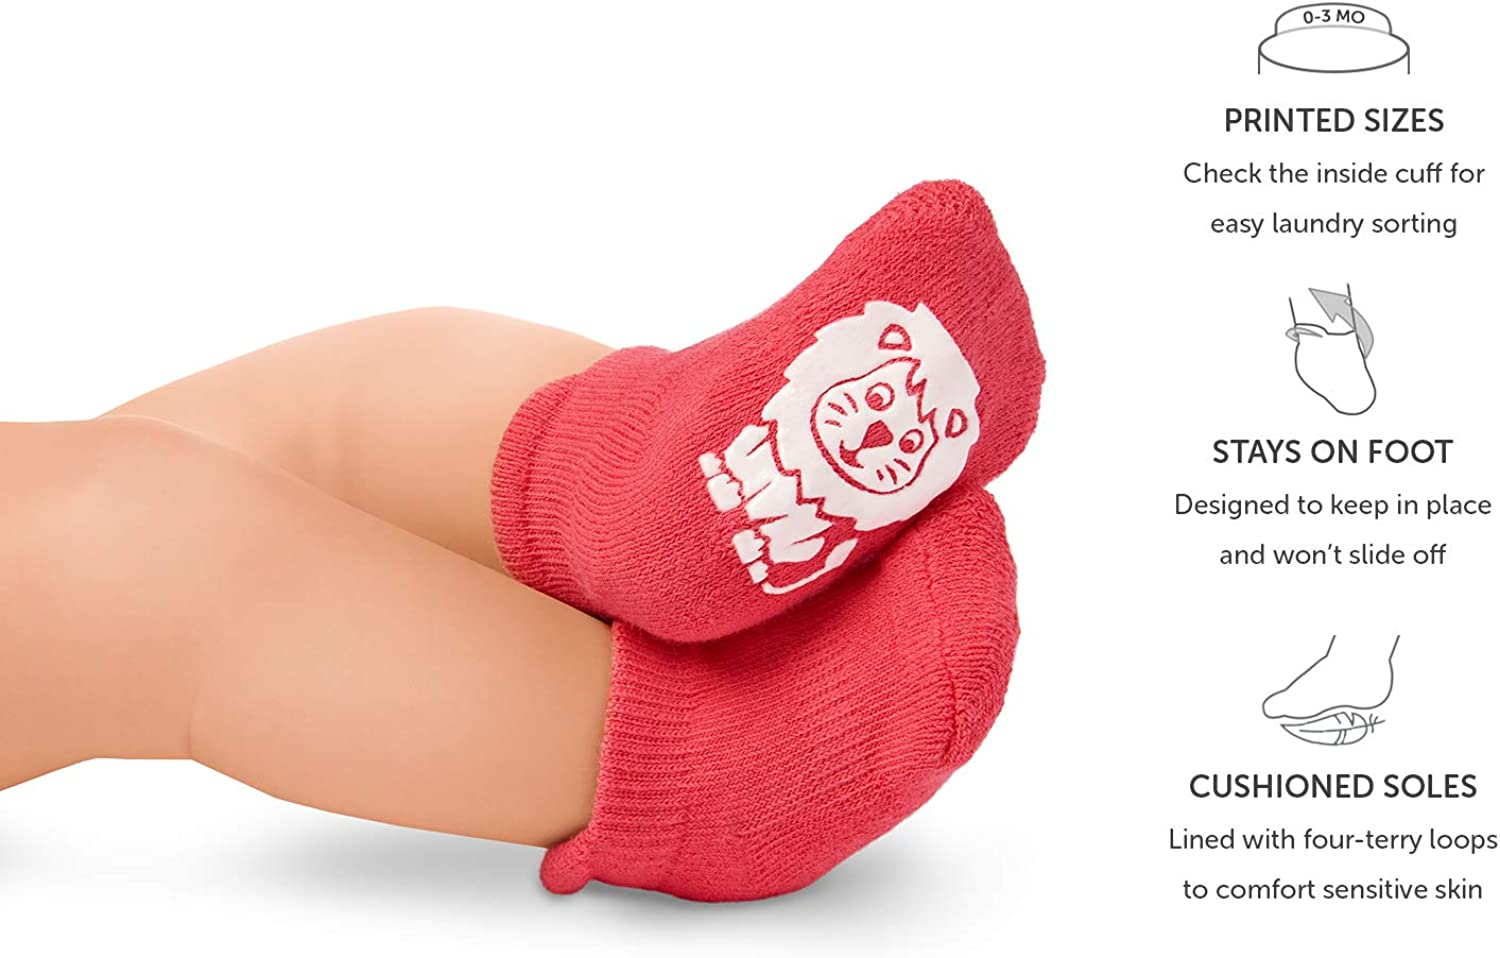 Anole Newborn /& Infant Baby Socks 6 Pairs Ankle Girls Boys with Soft Cotton Cushion